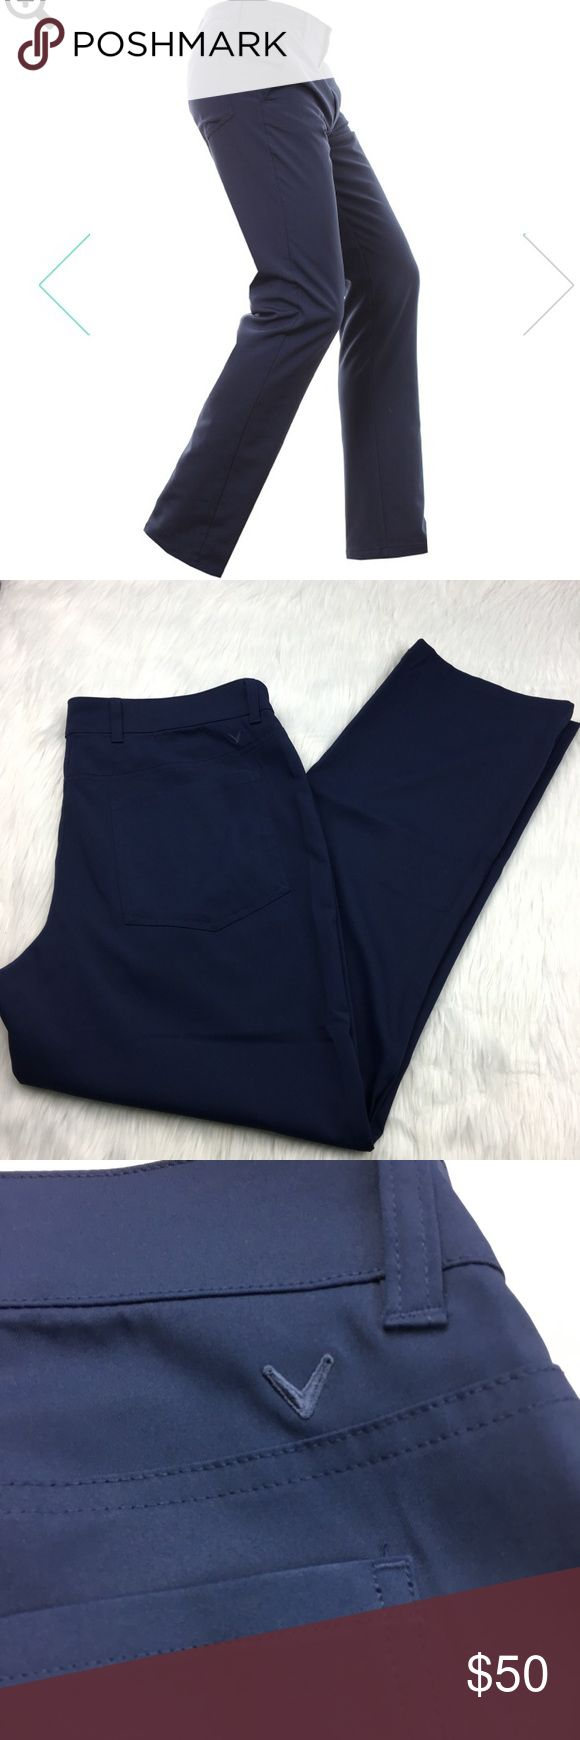 """NEW Callaway Navy Blue Golf Trousers NEW callaway navy blue 5 pocket golf trouser. features belt loops, a front zip and button fly, and chevron logo located to the right of the twin back pockets. straight leg  size: men's 36x30  measurements: waist 18.5"""" across / rise 11"""" / thigh 13.5"""" across / inseam 30""""  fabric content: 95% polyester, 5% spandex  washing instructions: machine wash  flaws: never washed or worn  weight: 11 ounces Callaway Pants"""